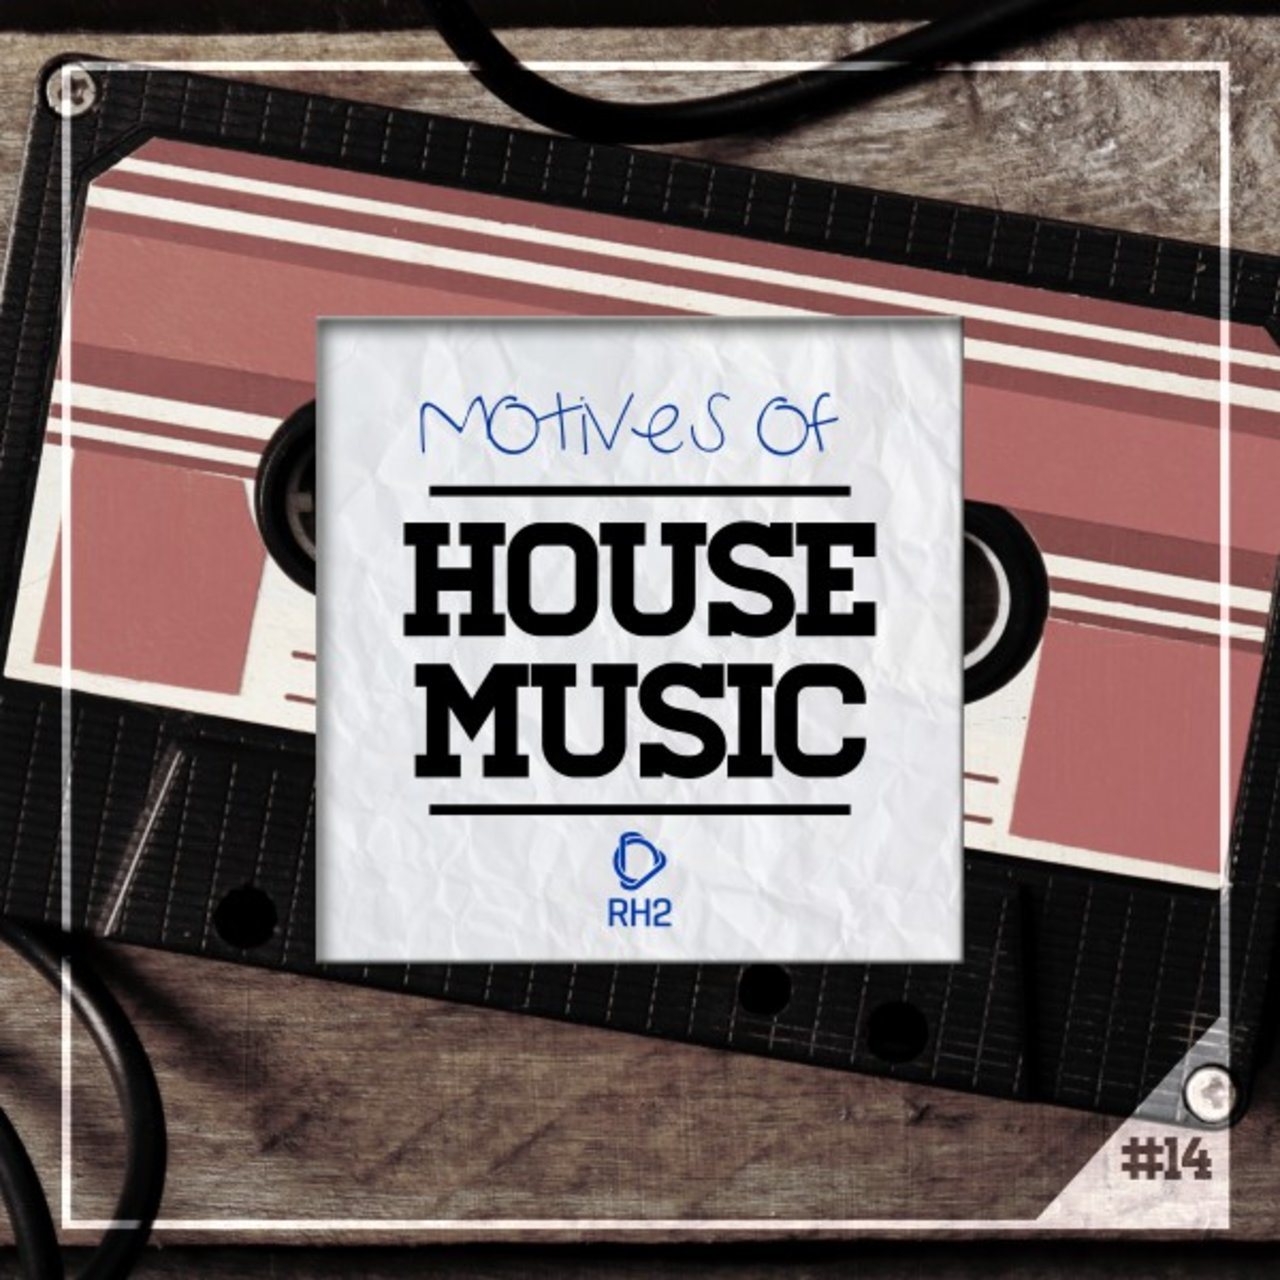 Motives of House Music, Vol. 14